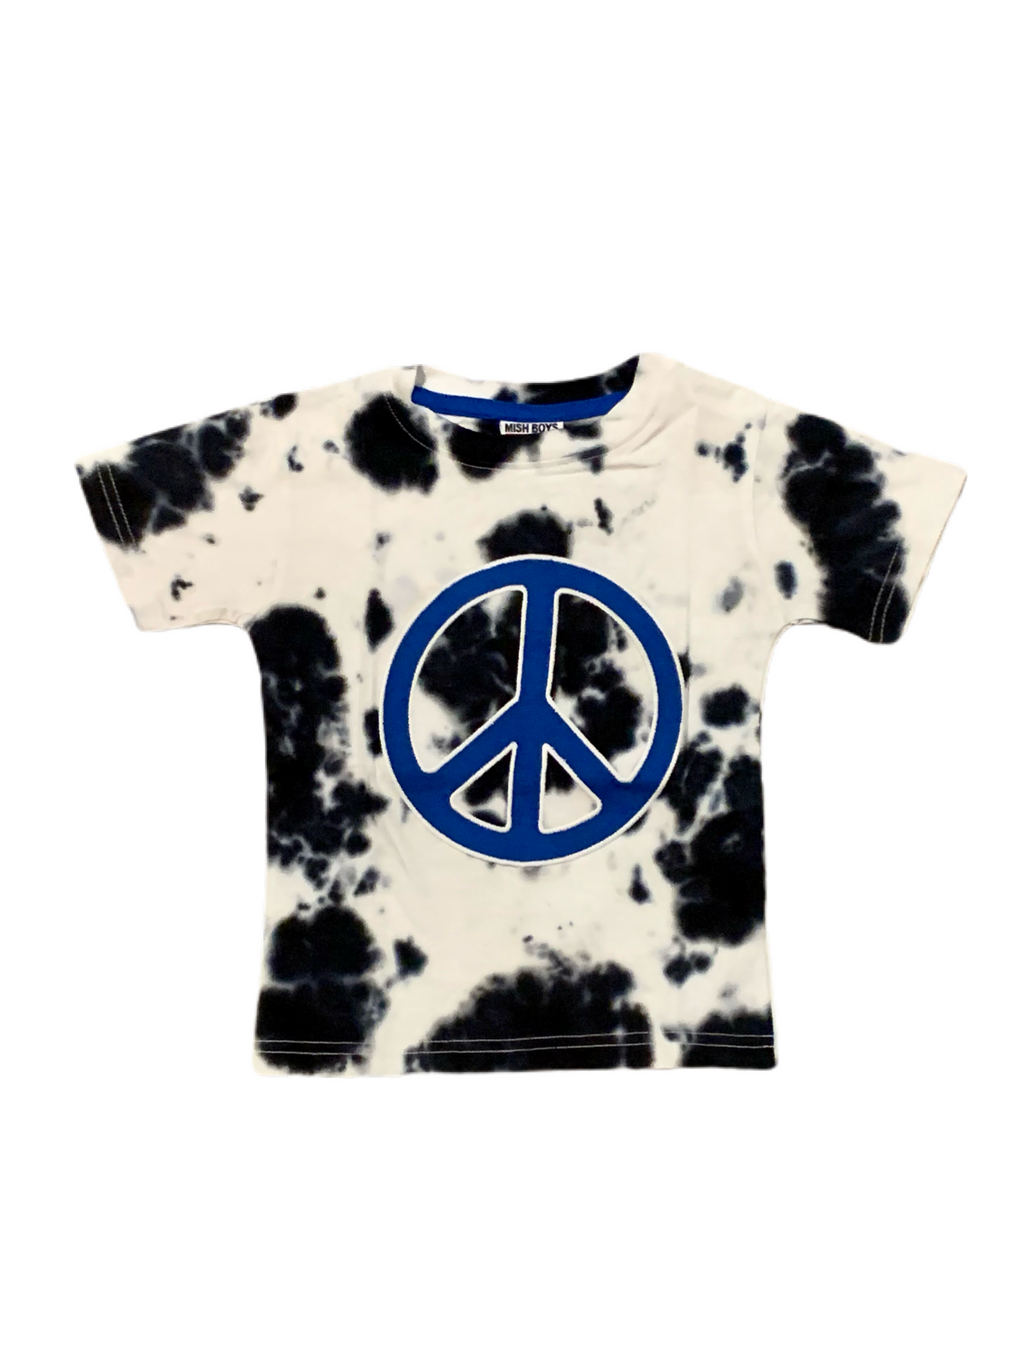 Mish Mish Black and White Tie Dye World Peace Tee